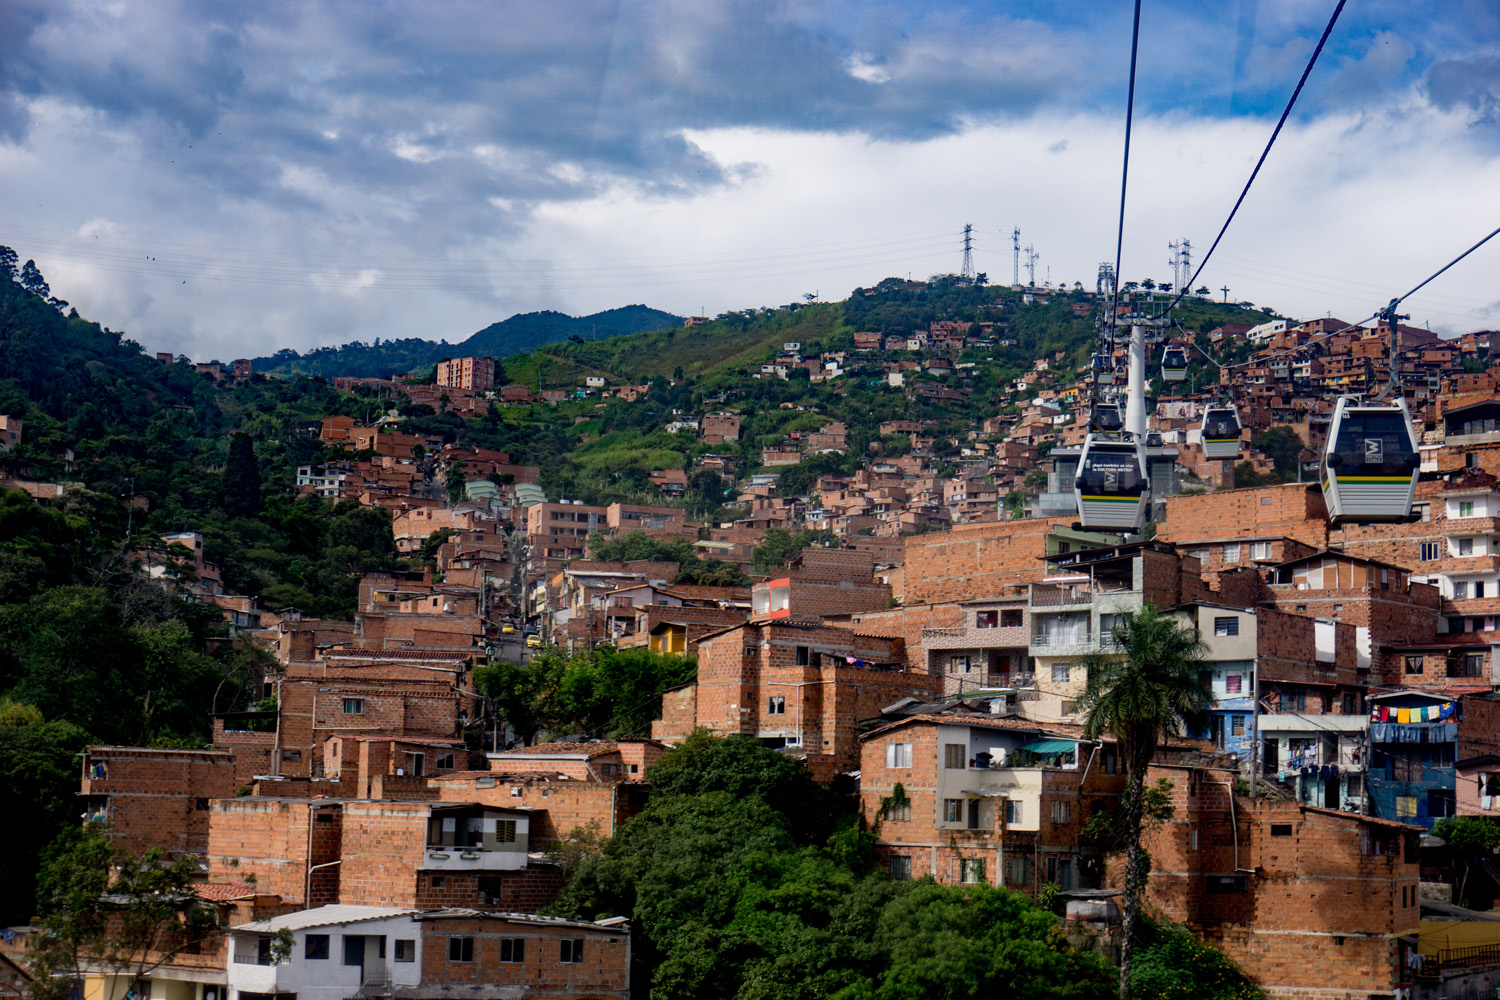 Medellín's cable car system for daily transit.